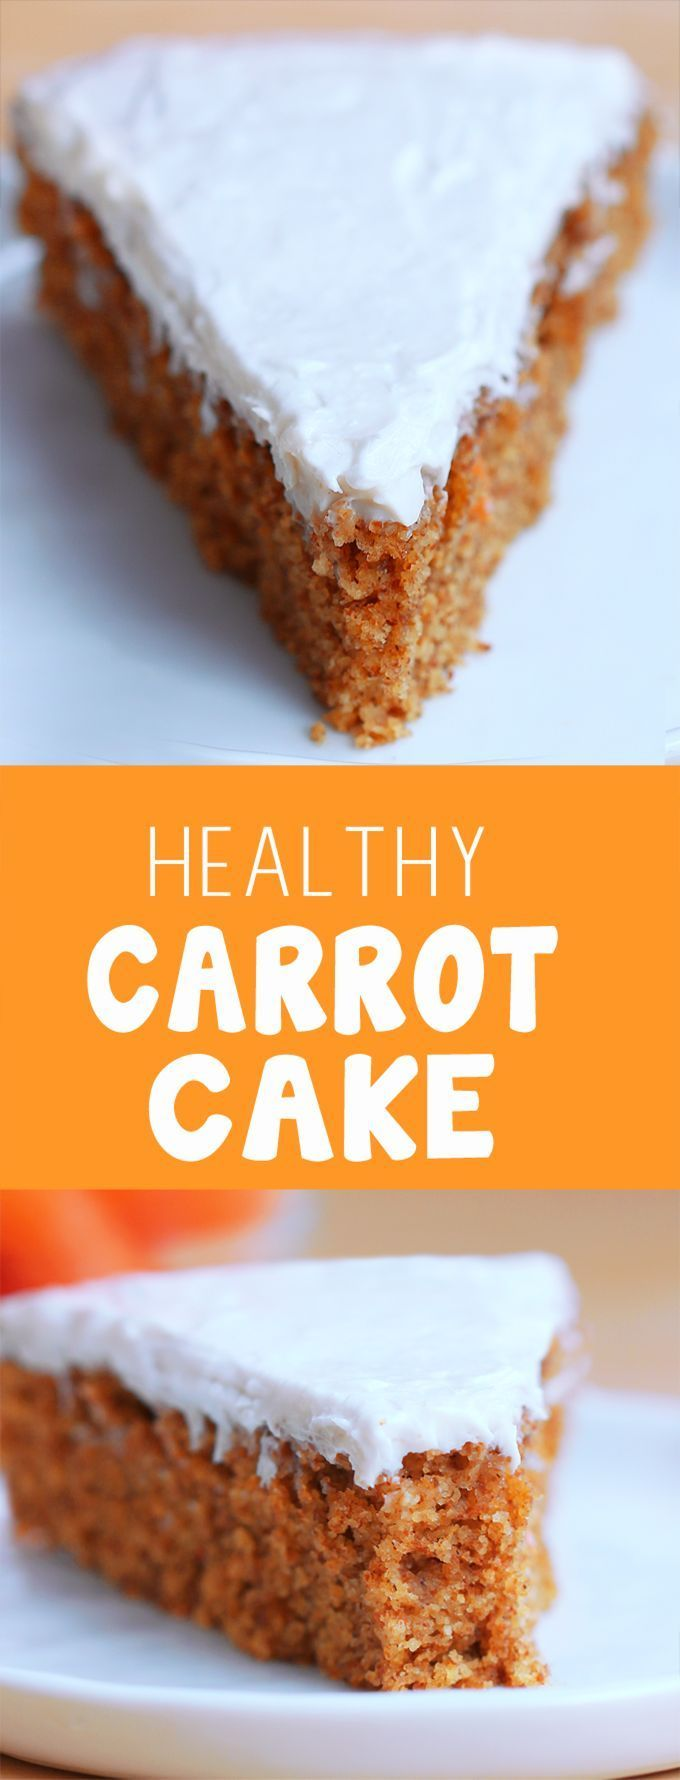 Super Moist Classic Carrot Cake - With a secretly healthy cream cheese icing... This is hands-down my favorite carrot cake recipe, & it's even good for breakfast! @Chocolate Covered Katie... chocolatecoveredk...